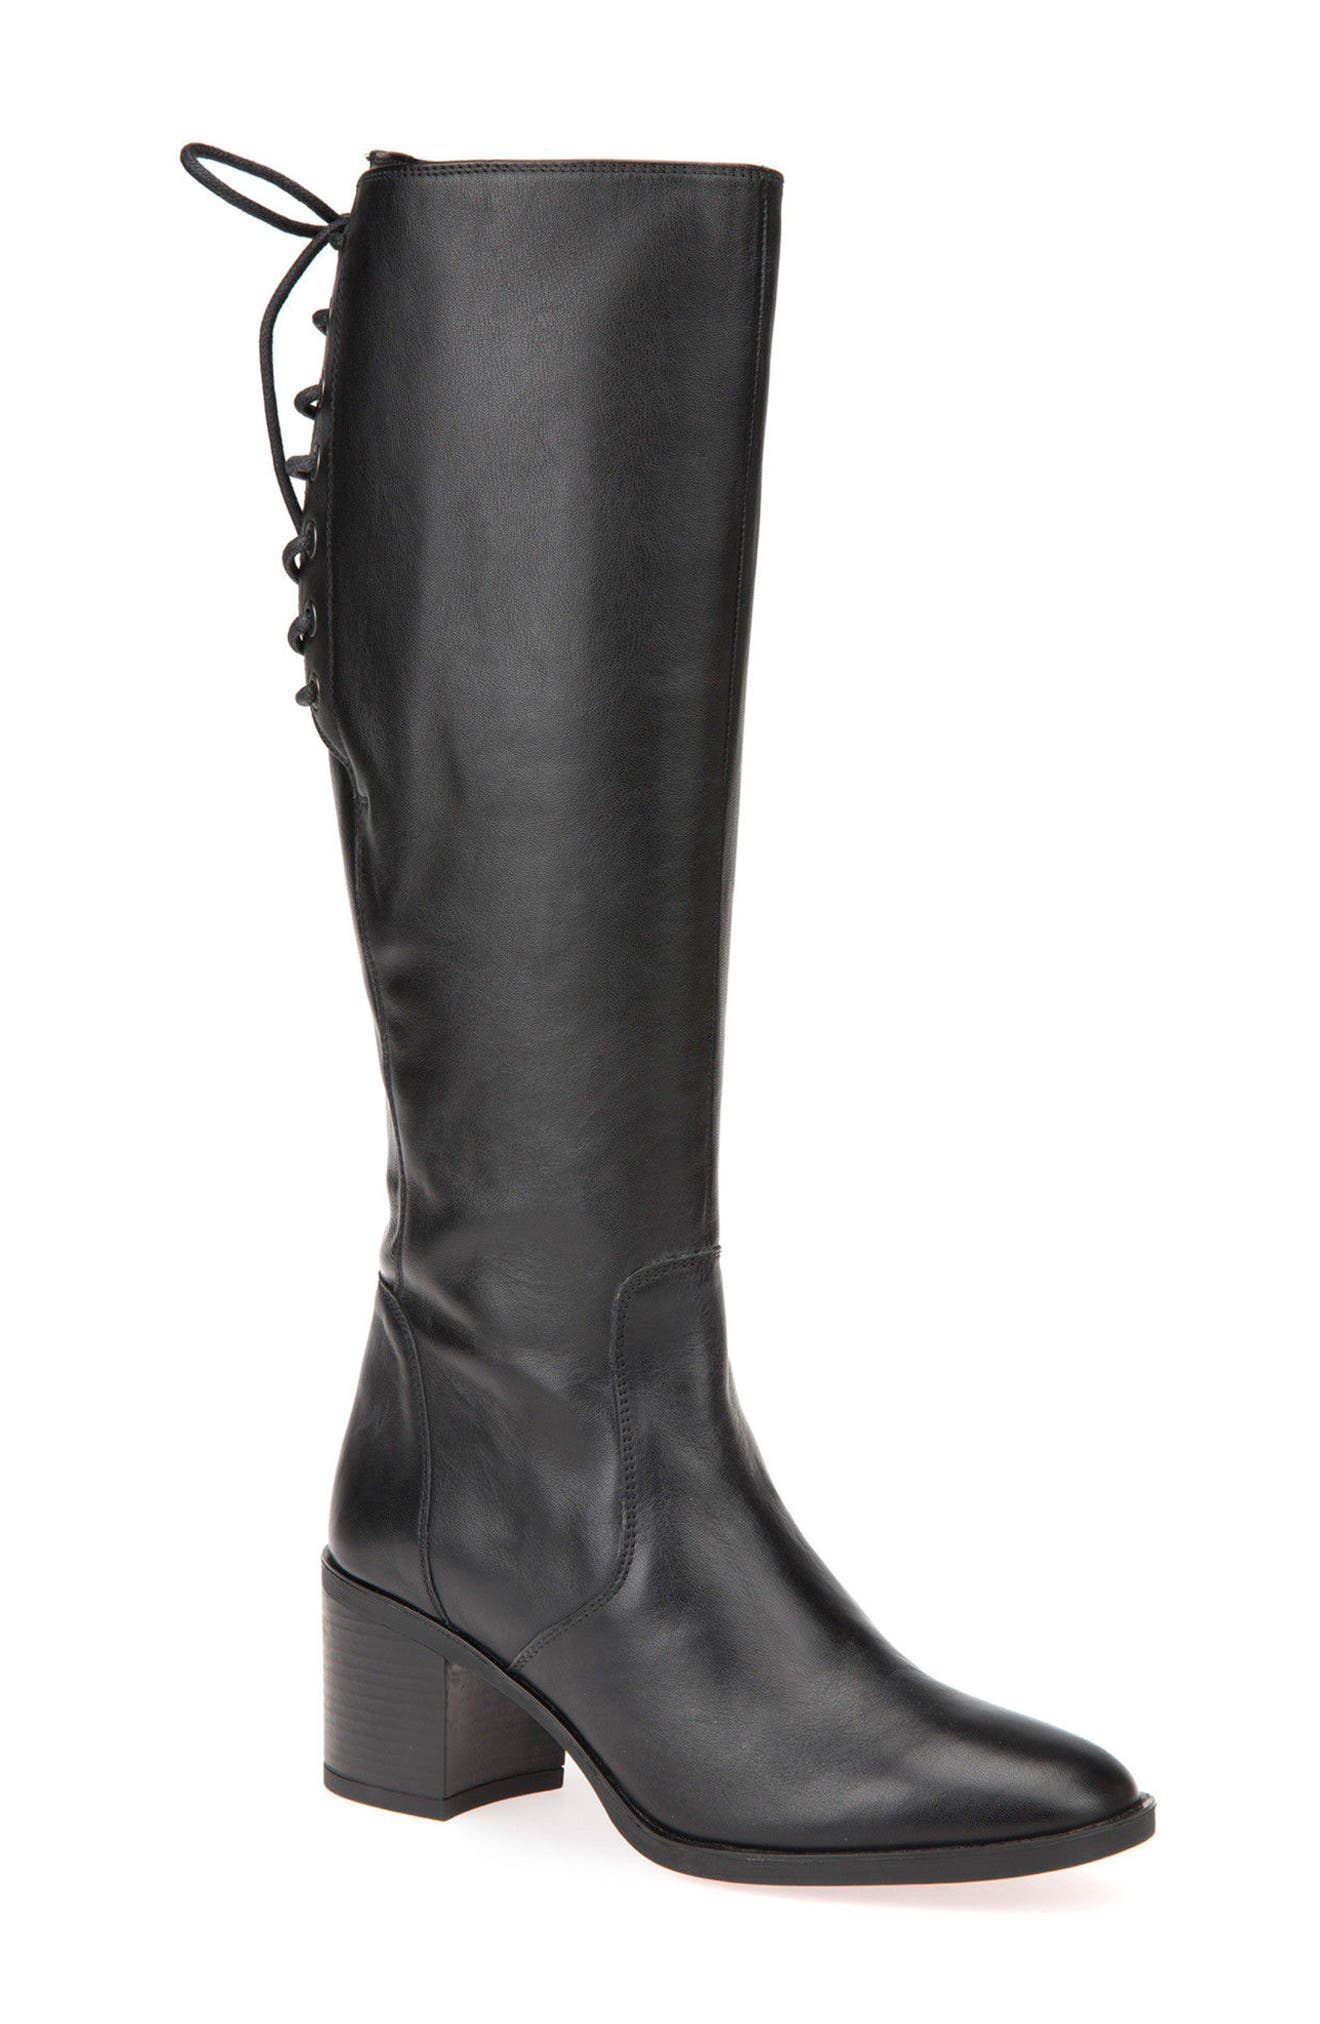 Main Image - Geox Glynna Knee High Boot (Women)